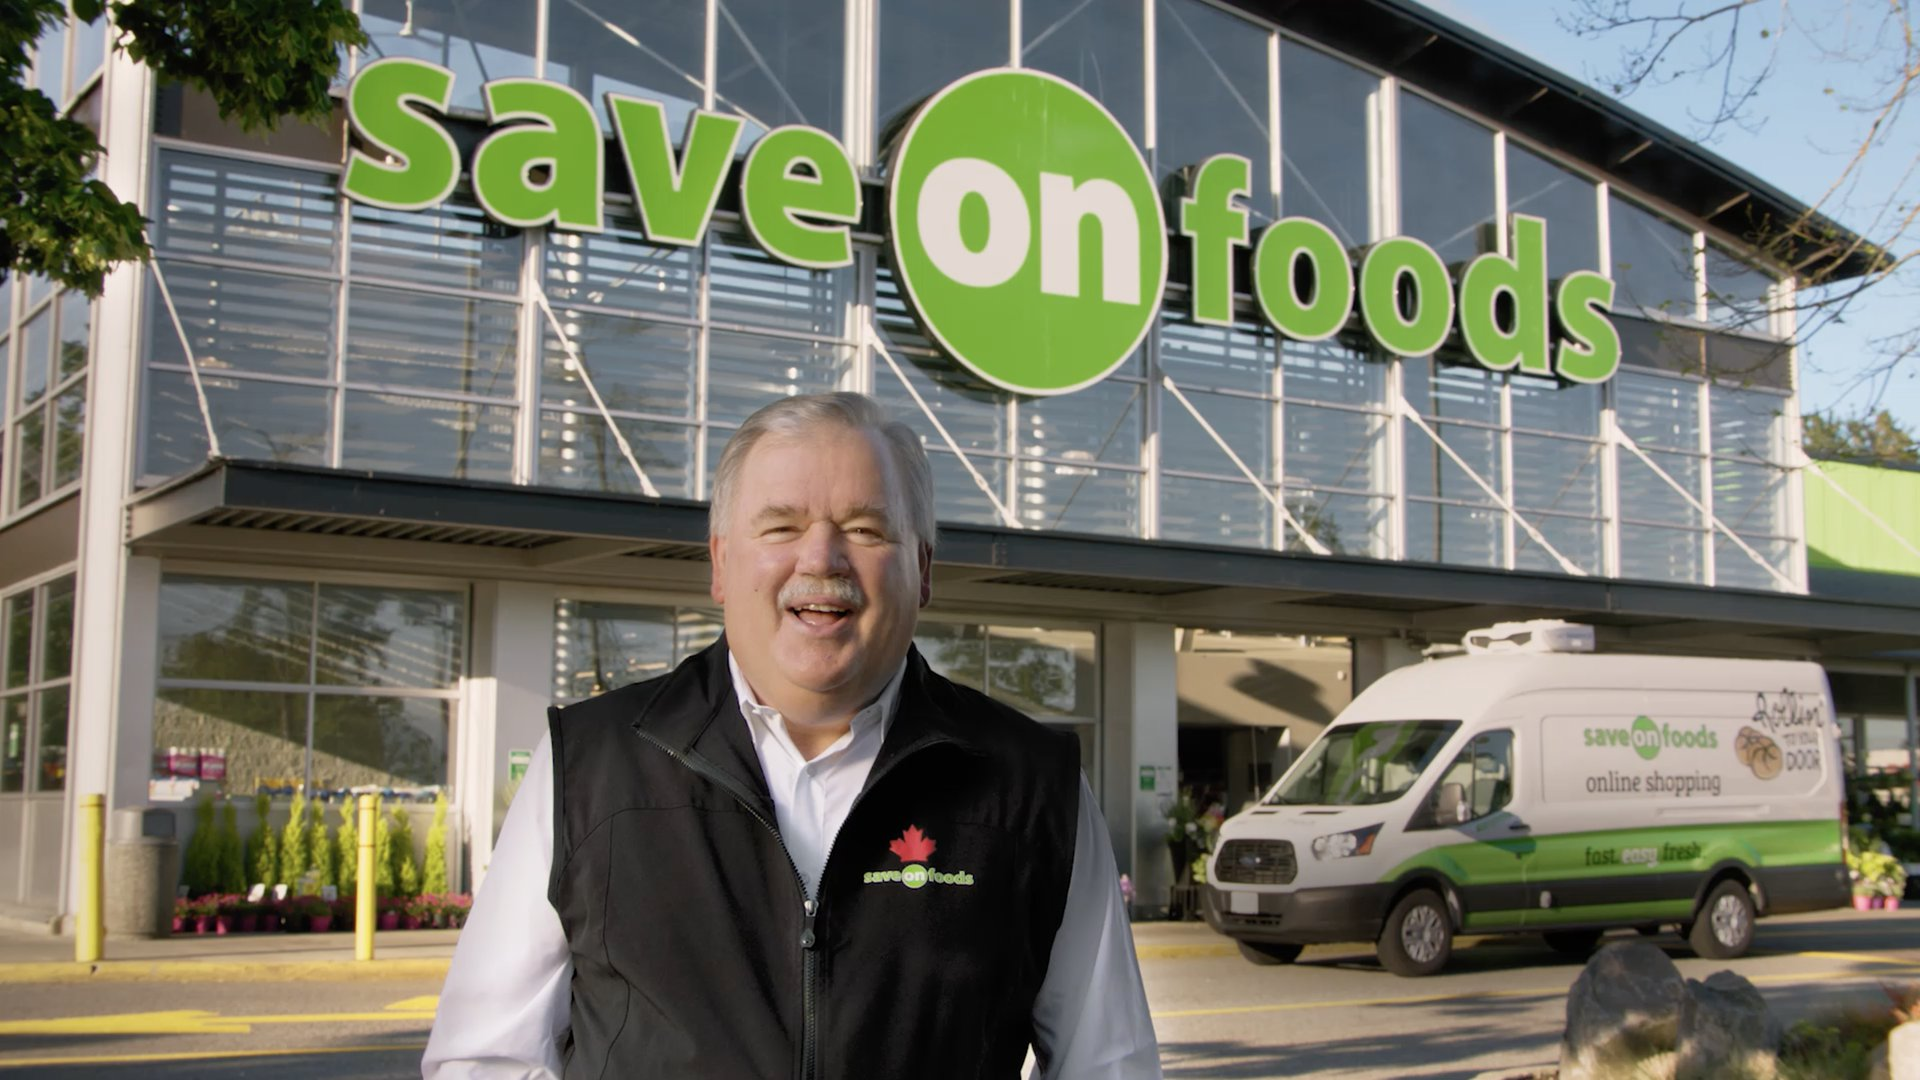 Save On Foods - 'Locals' Campaign